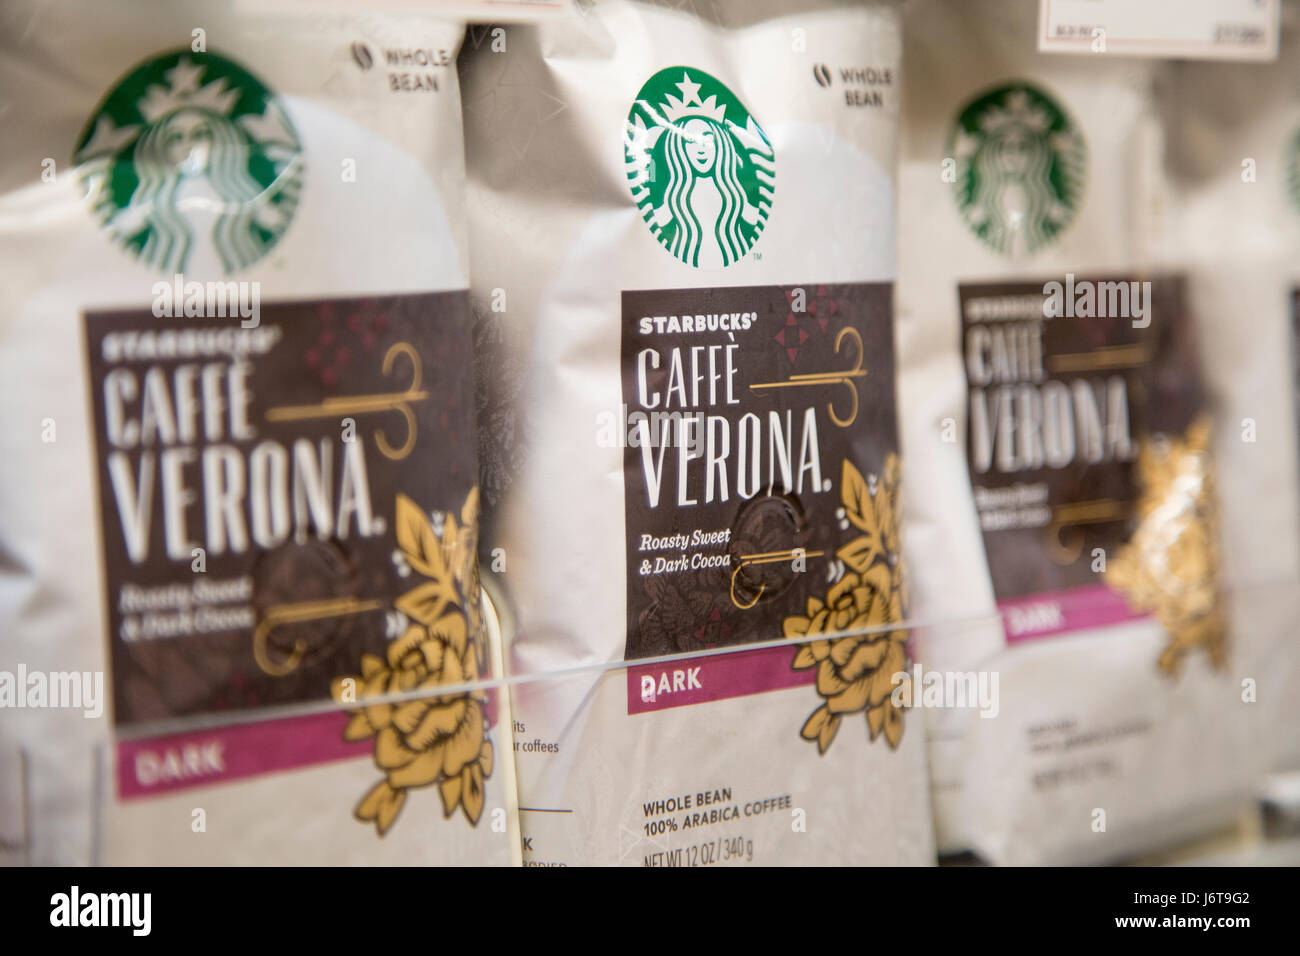 bags of Starbucks brand Caffe Verona whole bean coffee on the shelf of a grocery store - Stock Image